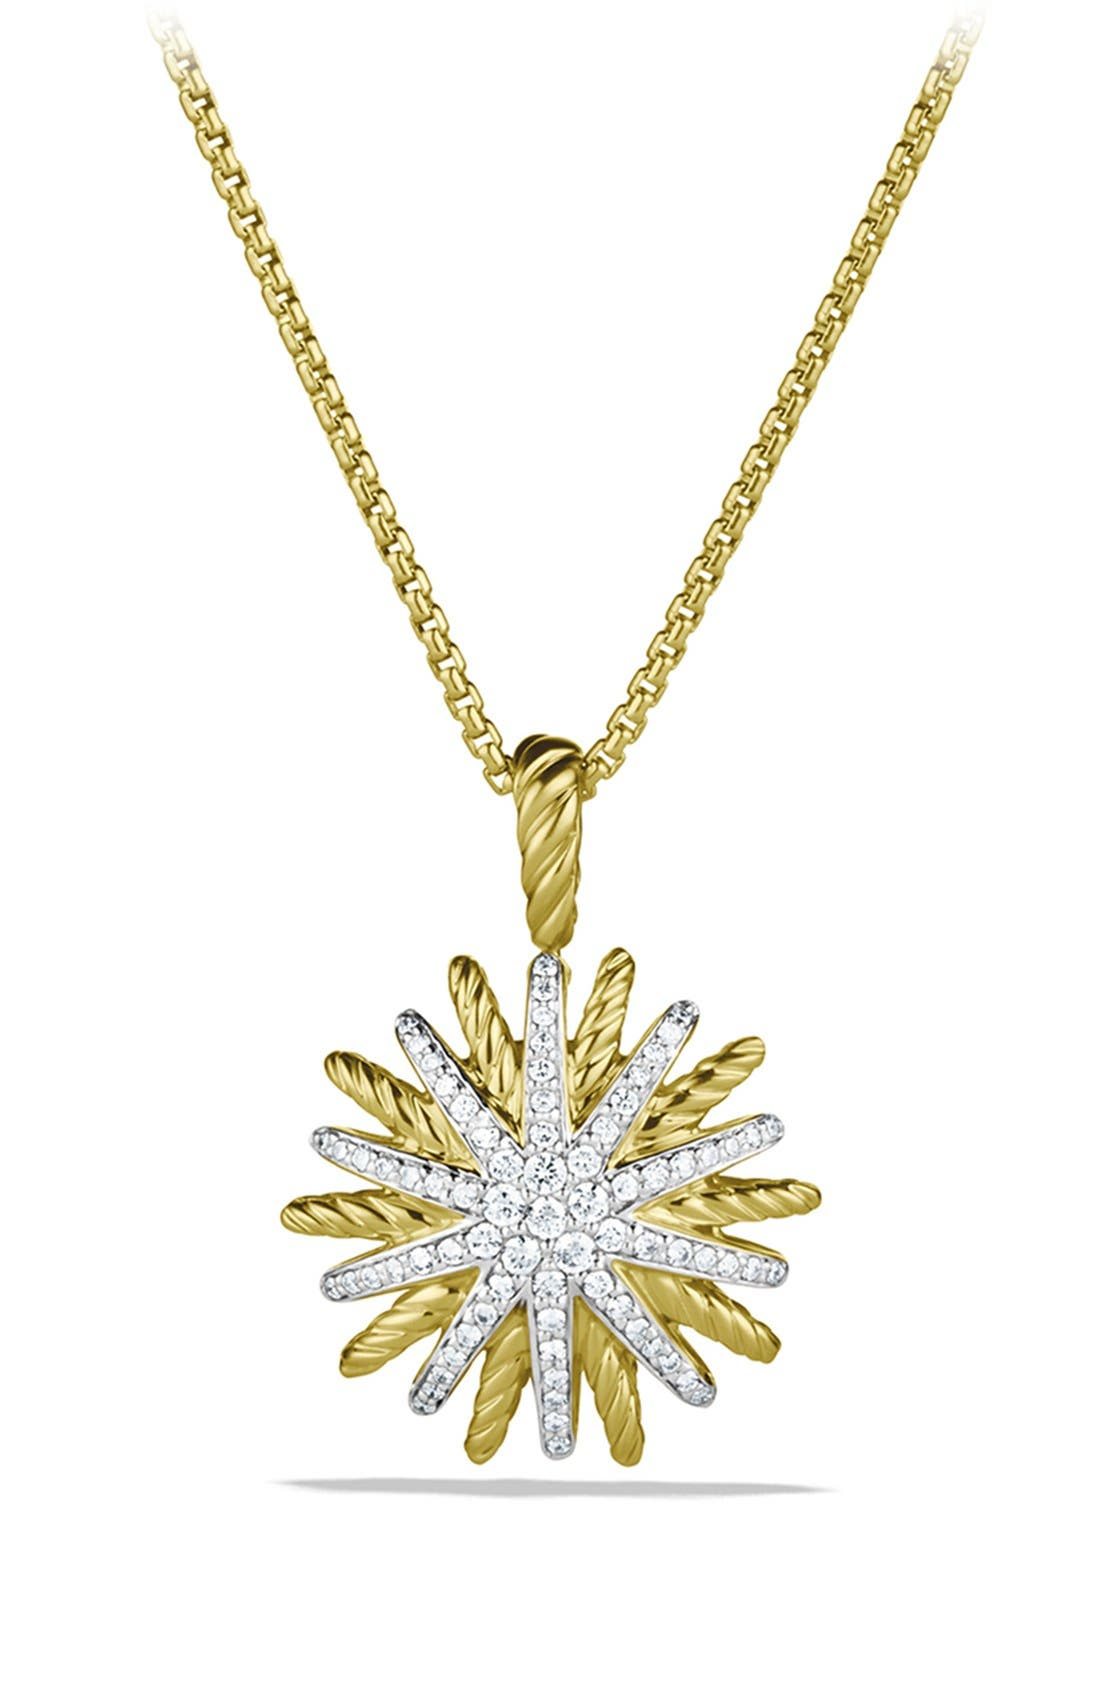 DAVID YURMAN Starburst Small Pendant with Diamonds in Gold on Chain